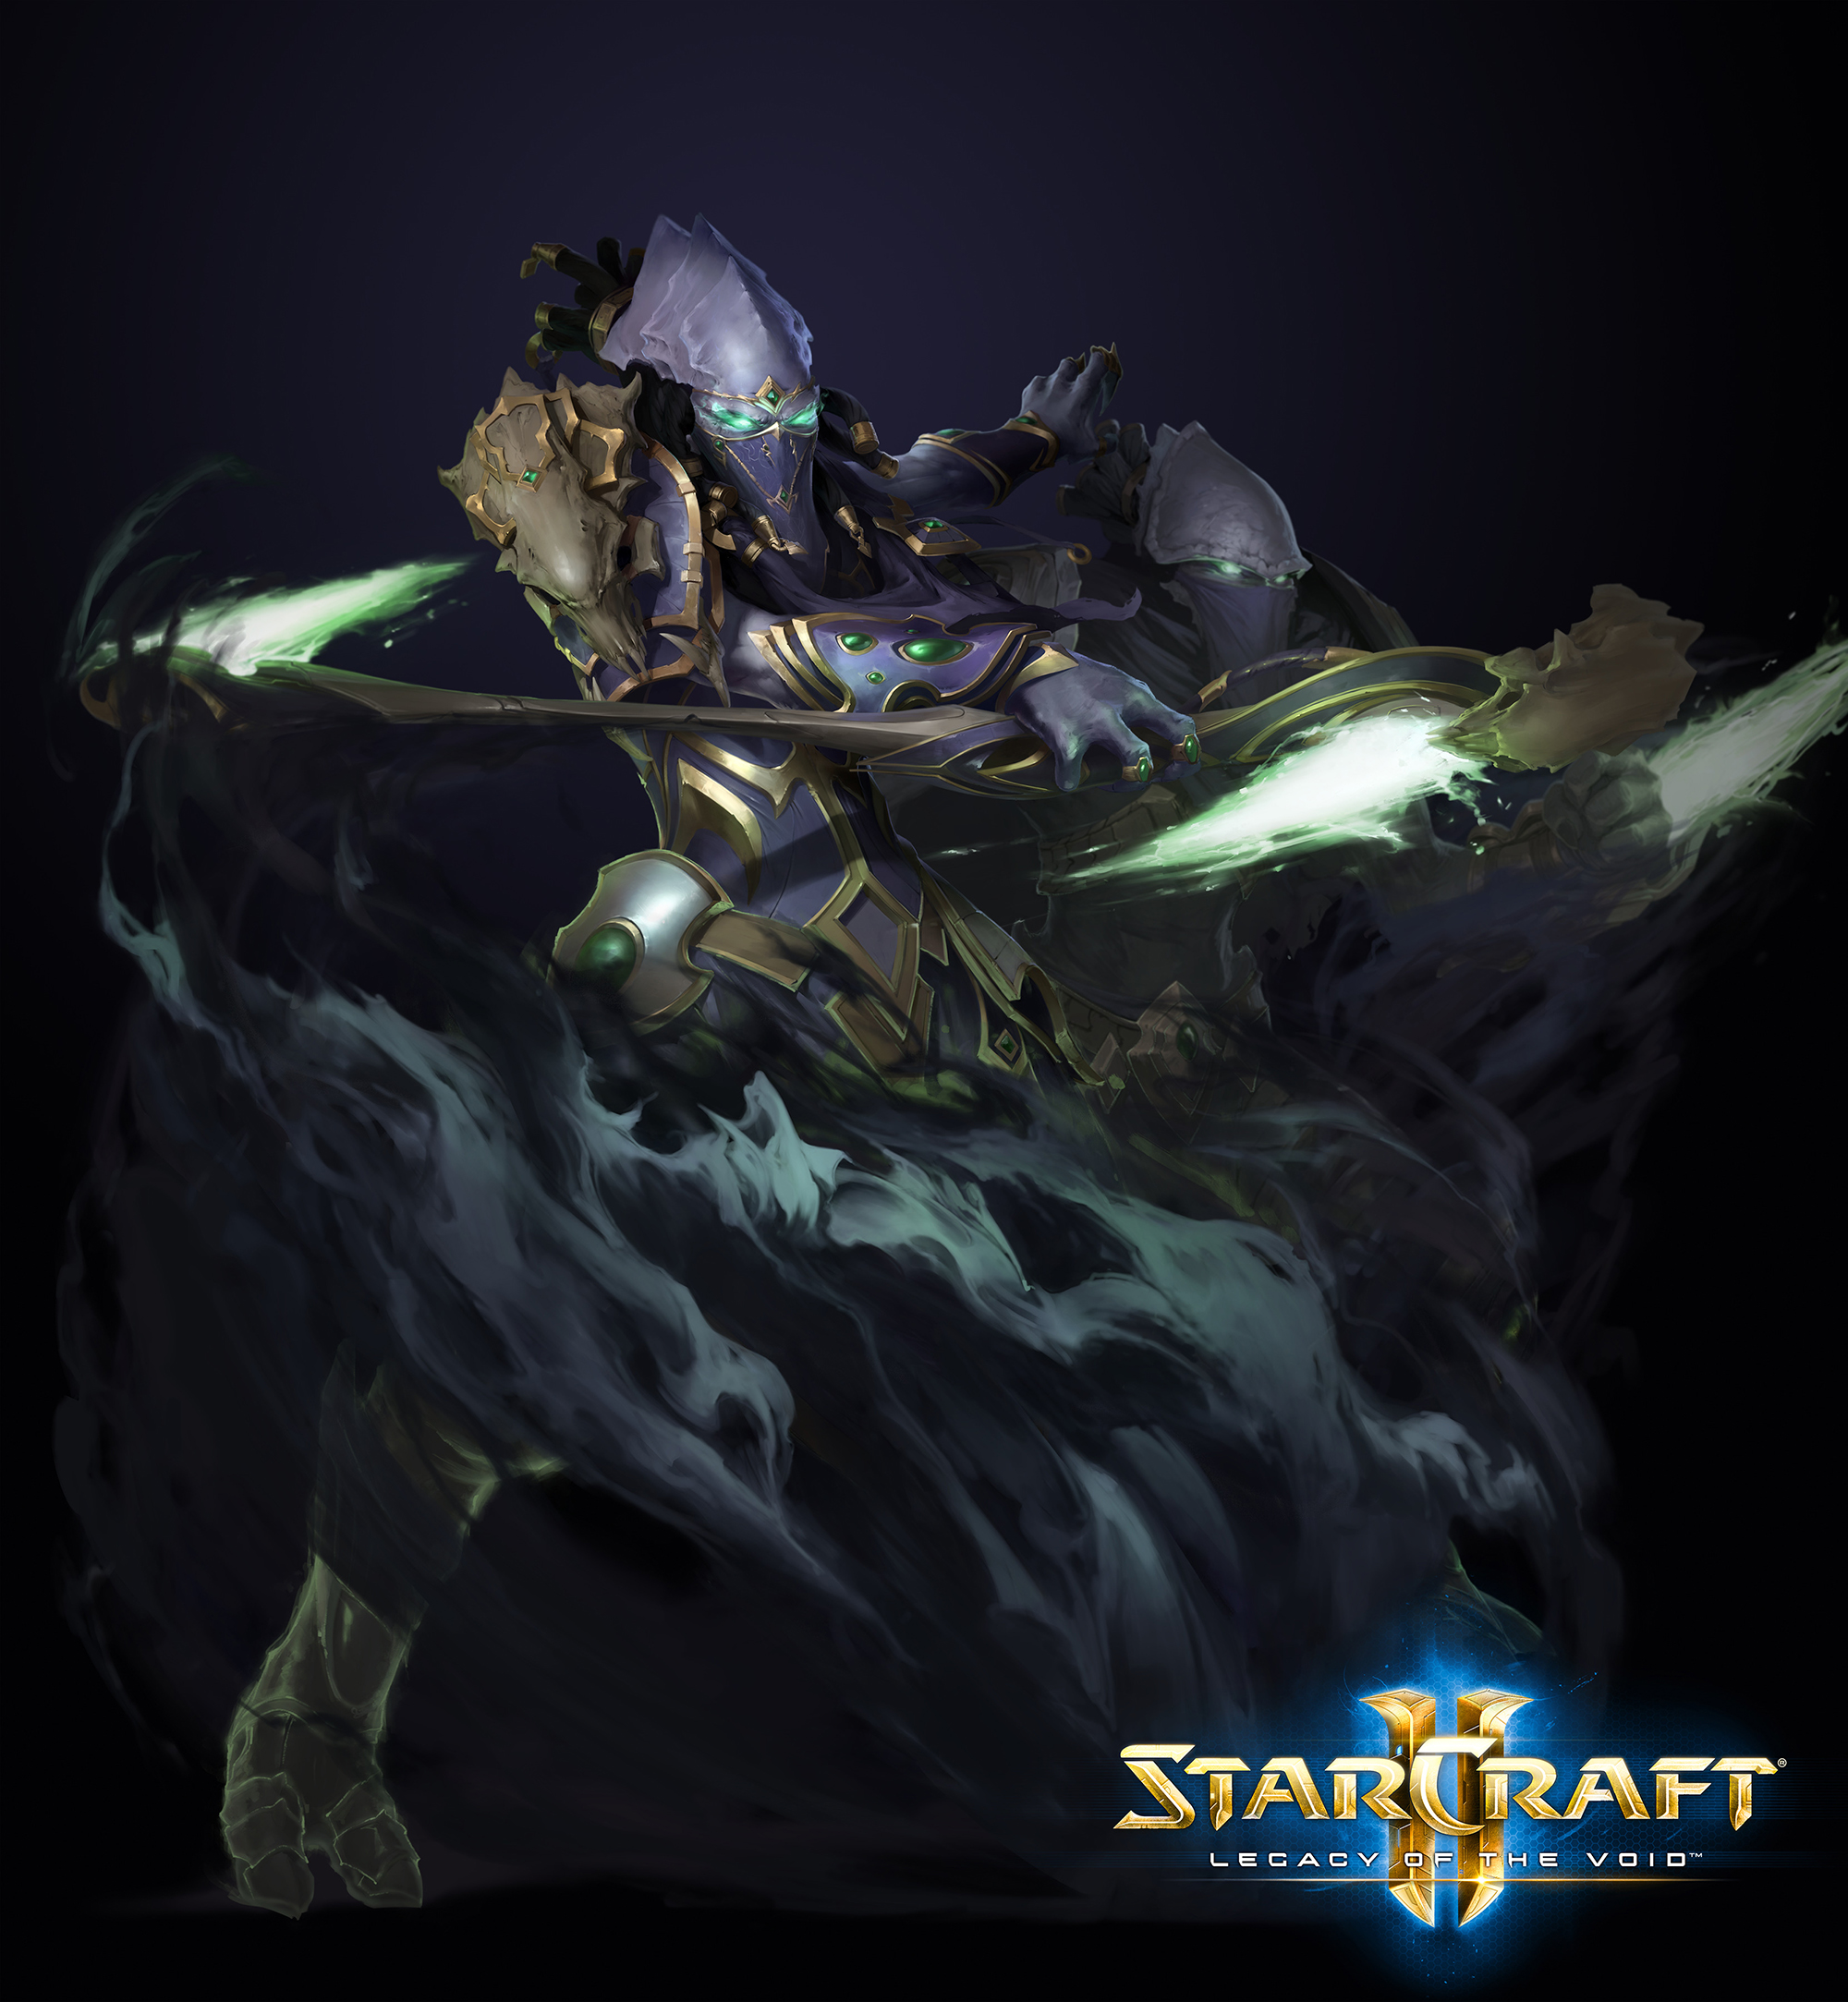 1446883558-starcraft-legacy-of-the-void-co-op-commander-vorazun